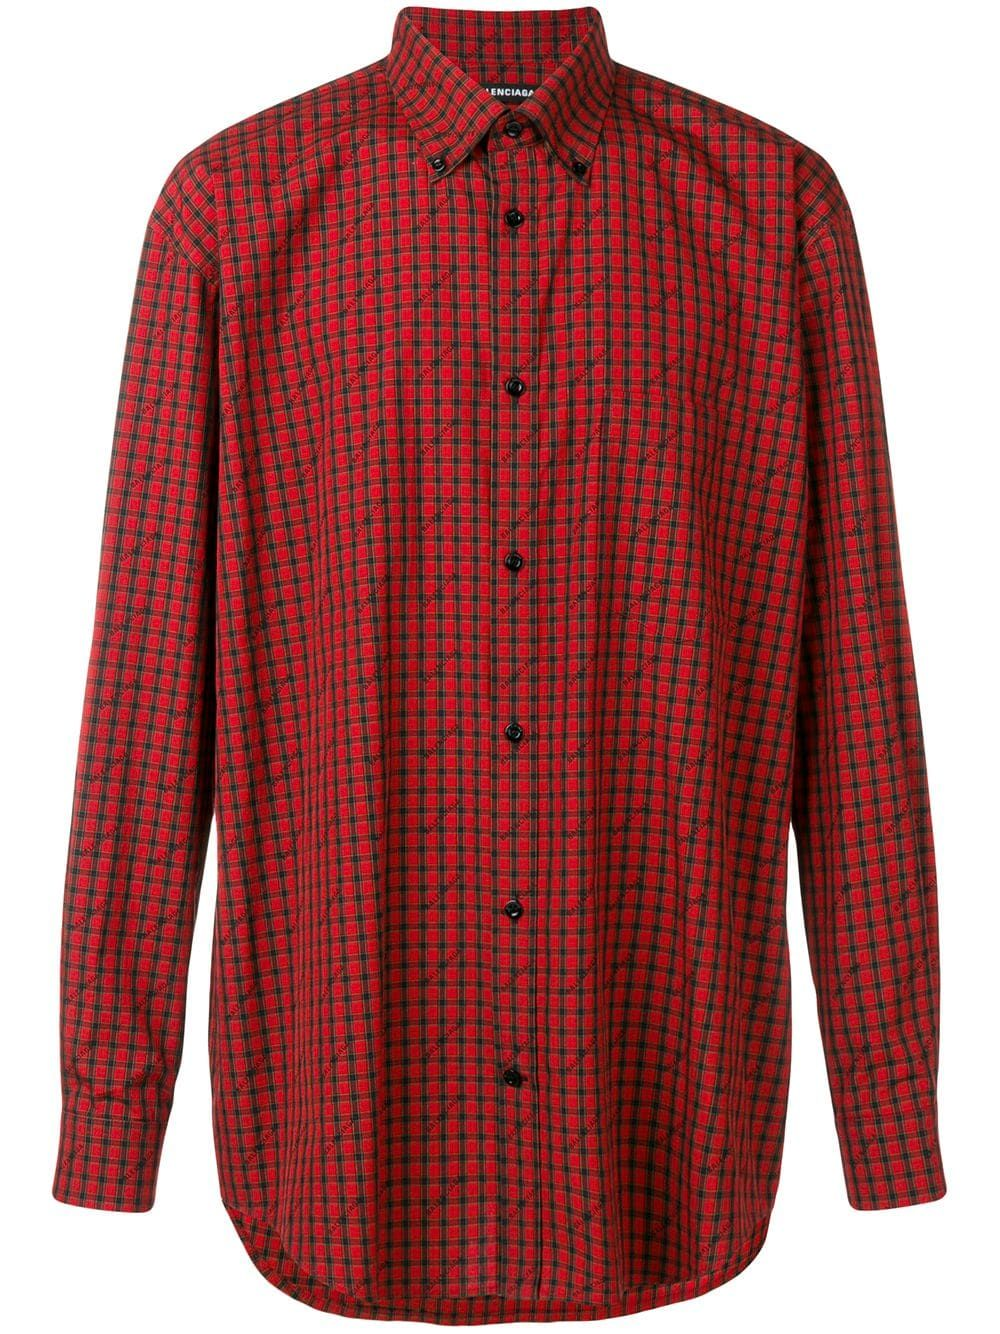 b75b3c3d1308 BALENCIAGA BALENCIAGA CHECK LOGO SHIRT - RED. #balenciaga #cloth ...